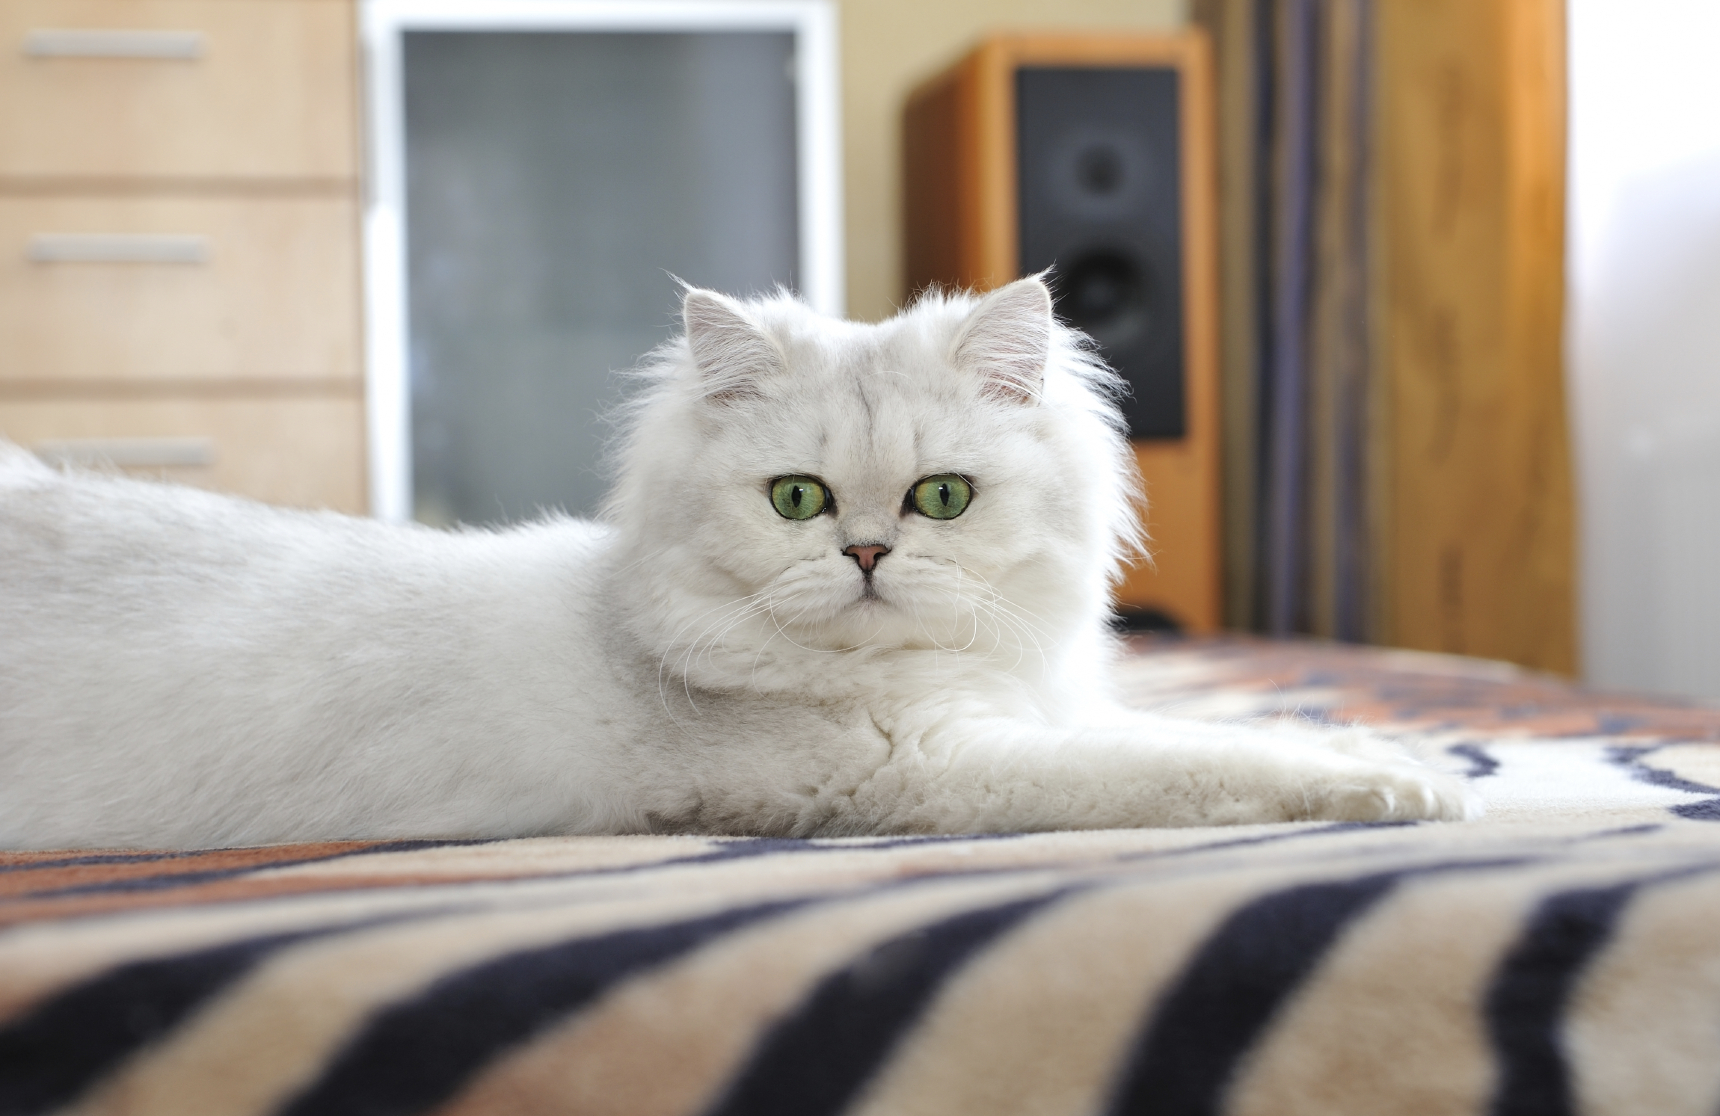 Research just confirmed your suspicions: Yes, your cat basically does rule your house